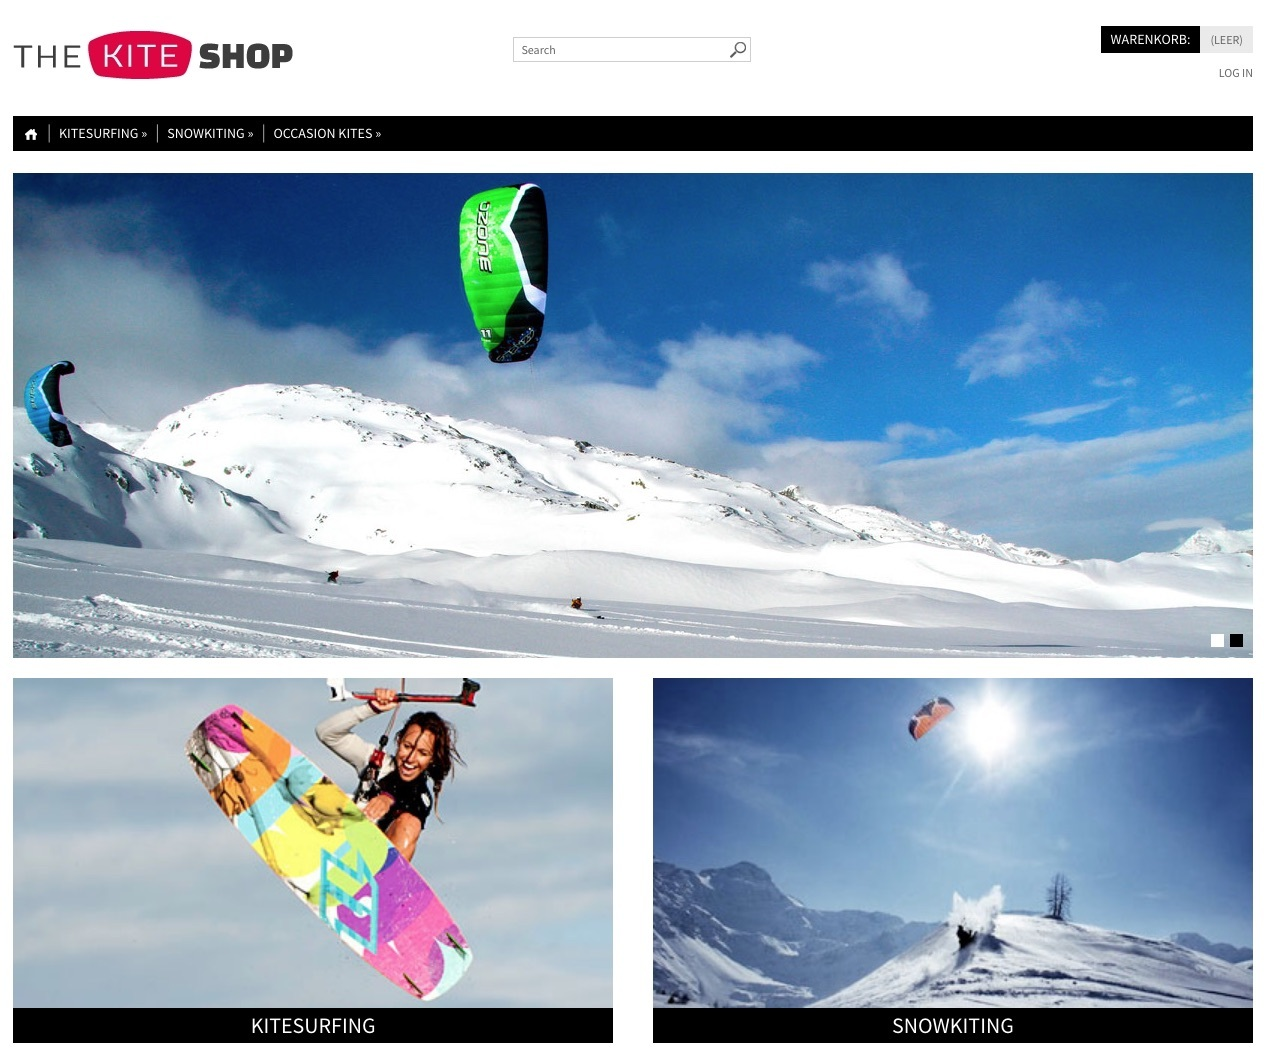 Kiteshop For Kitesurfing And Snowkiting